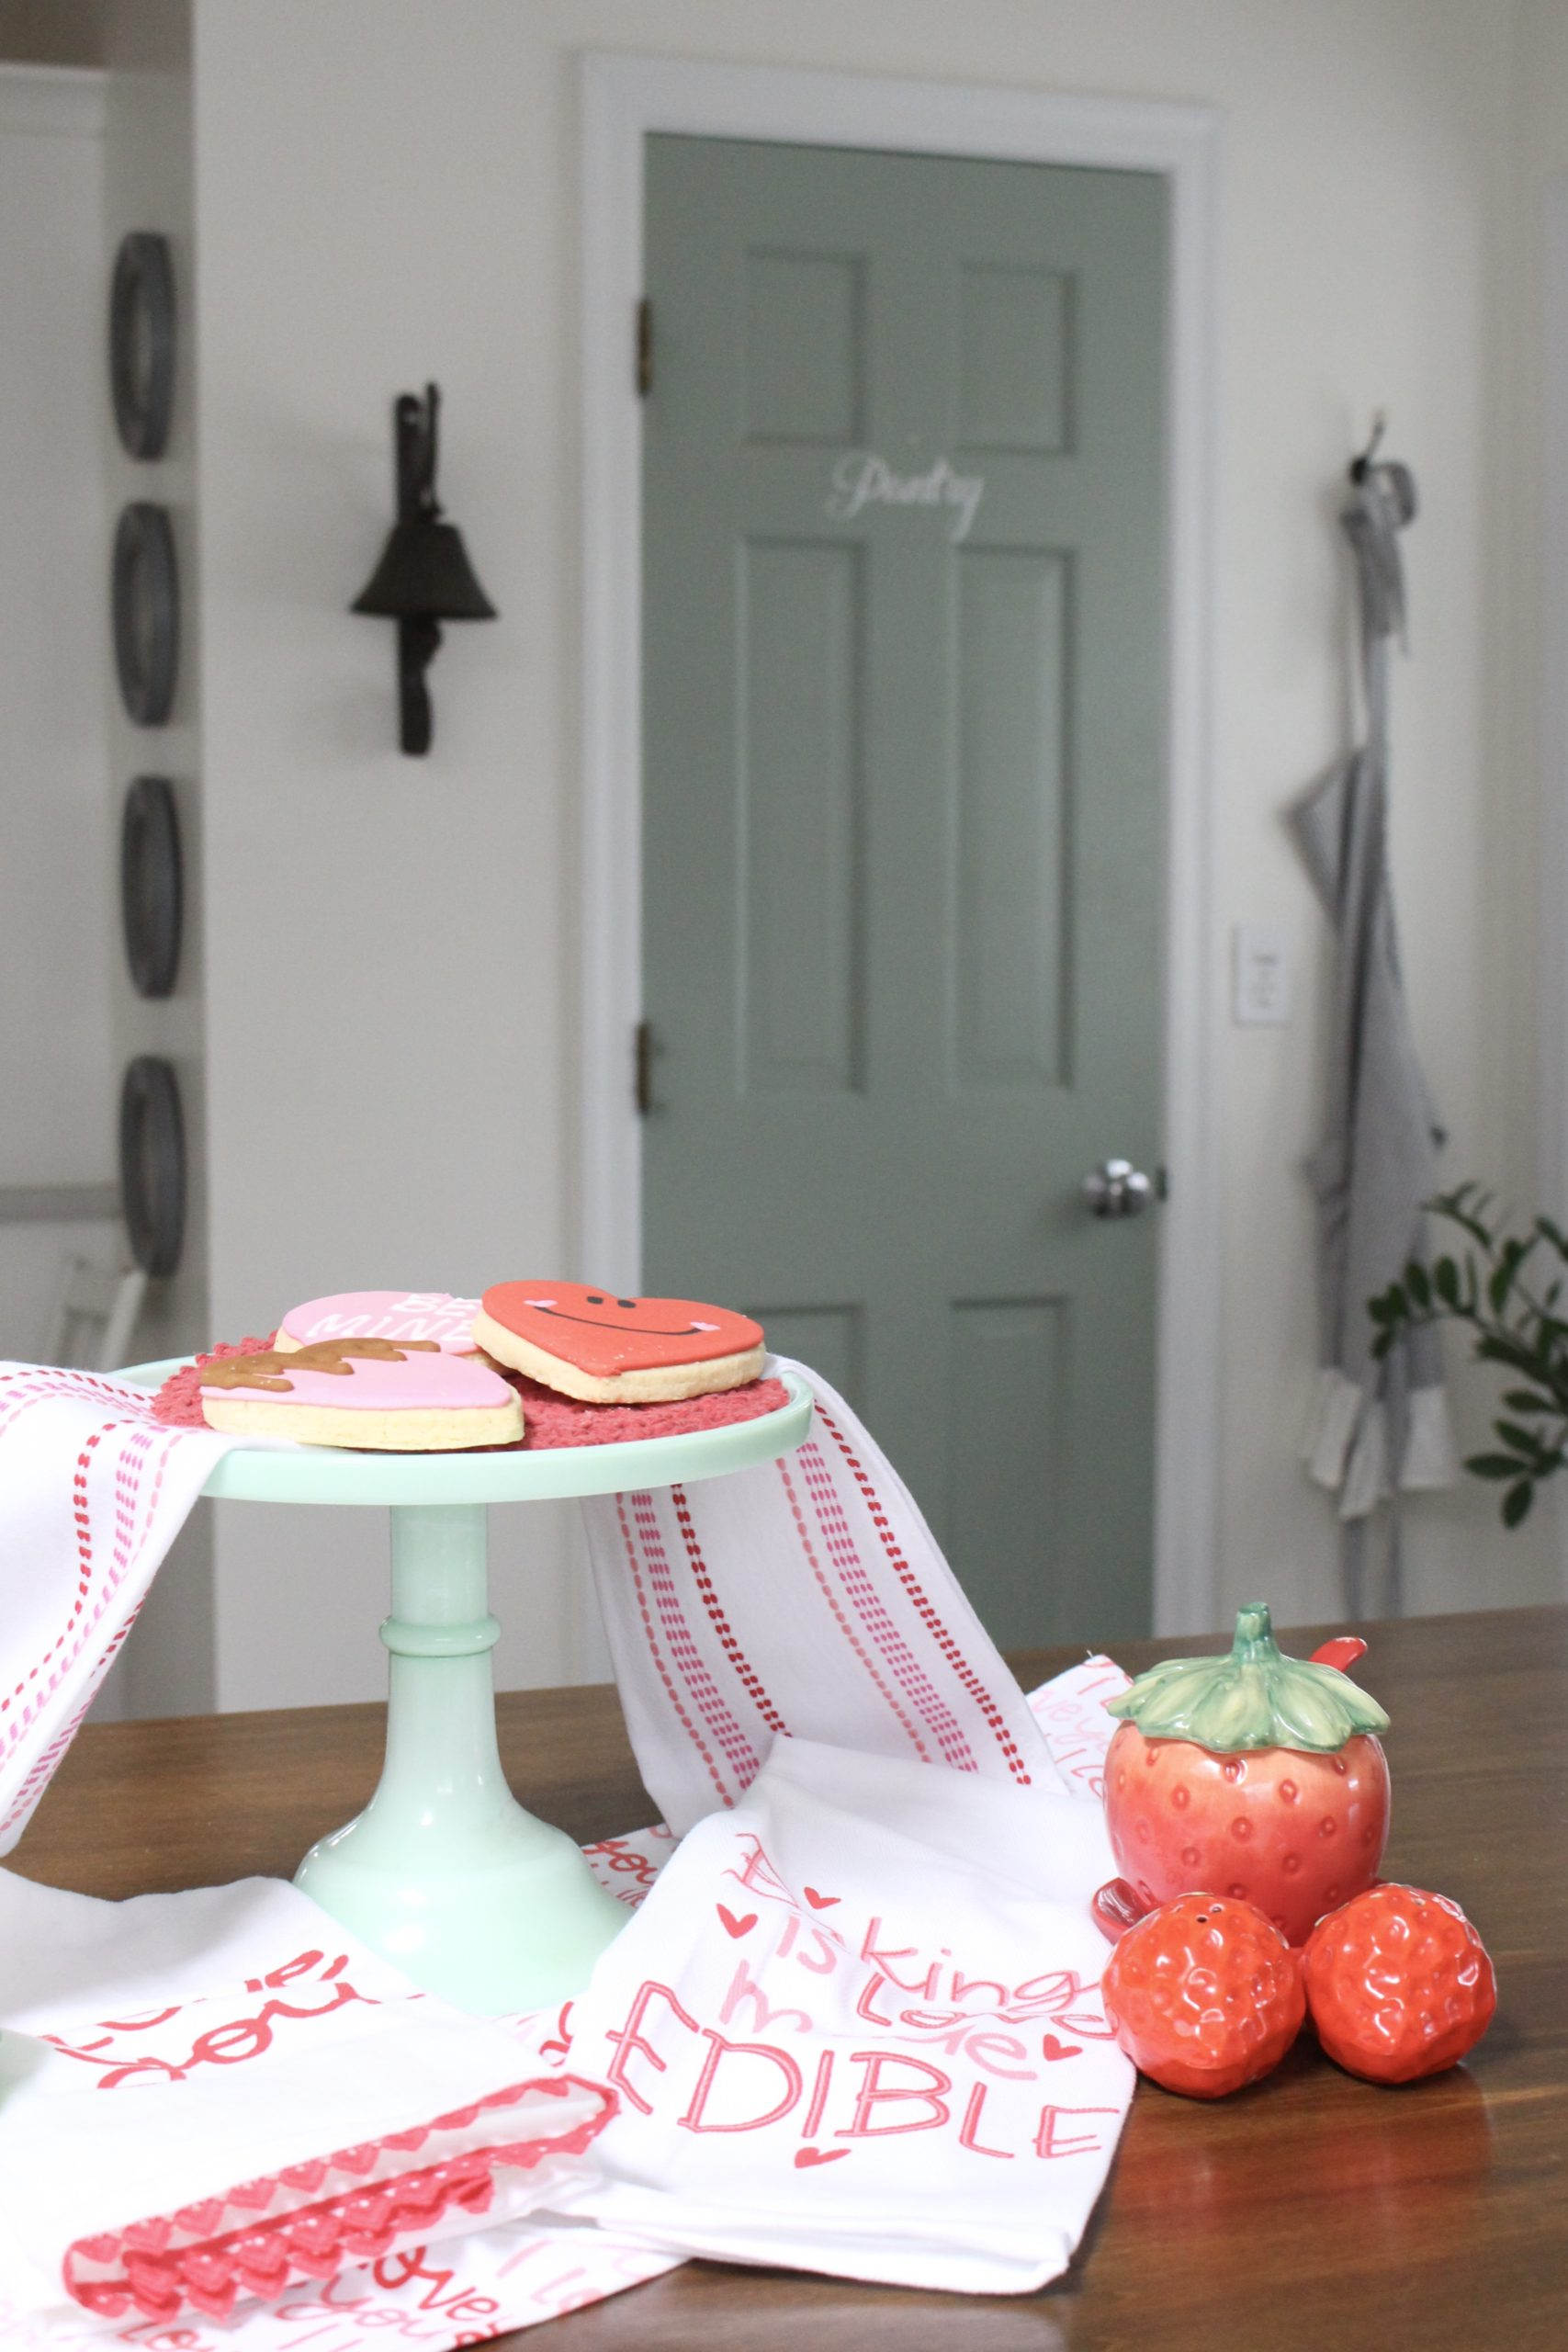 Valentine's Day Decor in the Kitchen